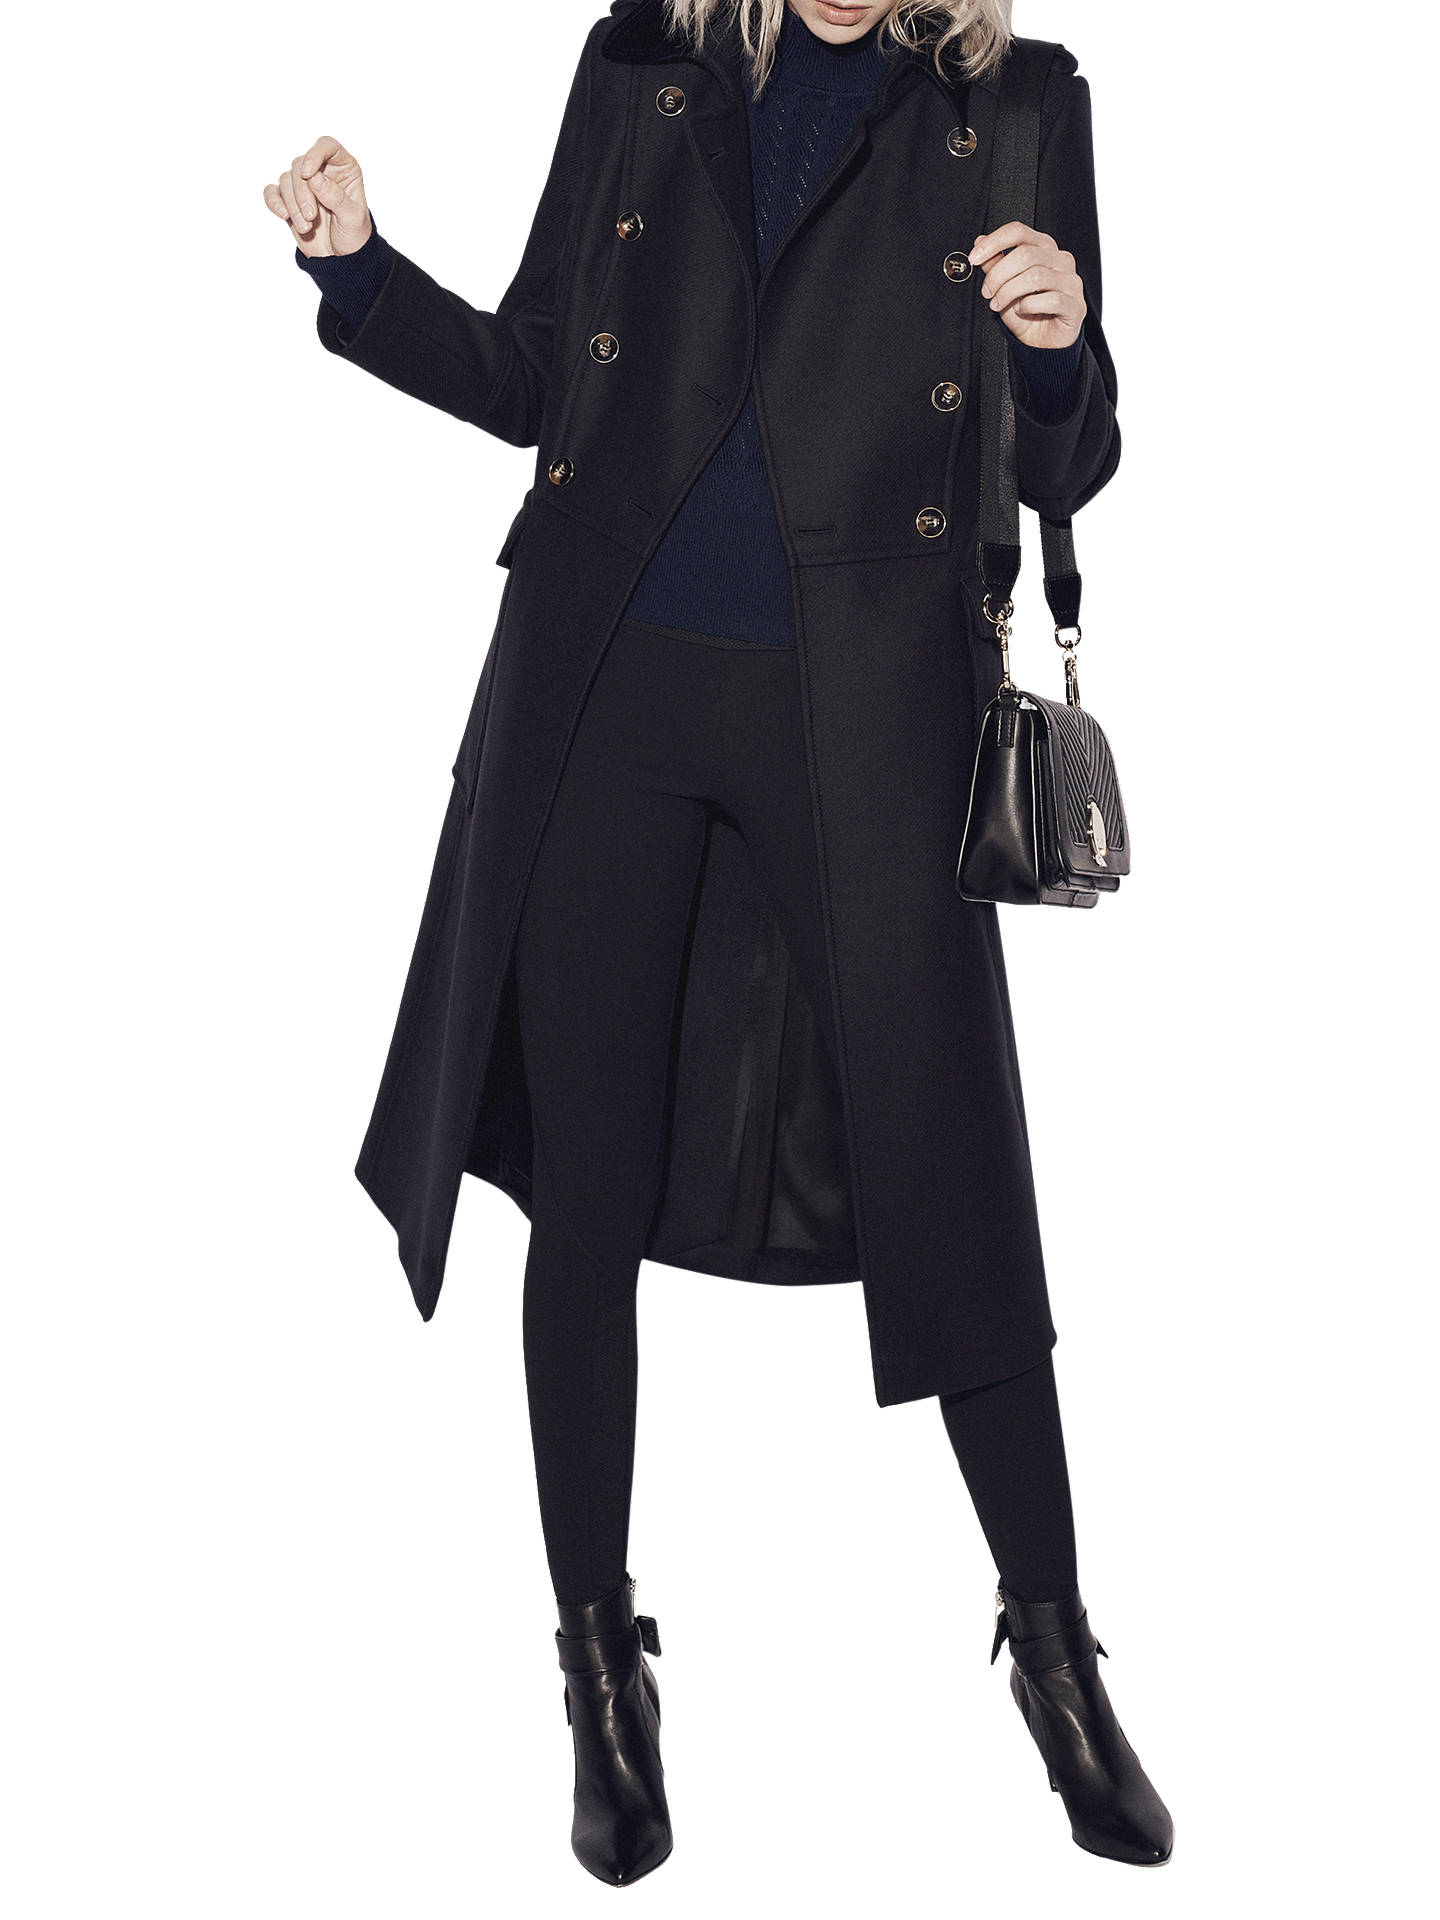 BuyKaren Millen Military Coat, Navy, 8 Online at johnlewis.com